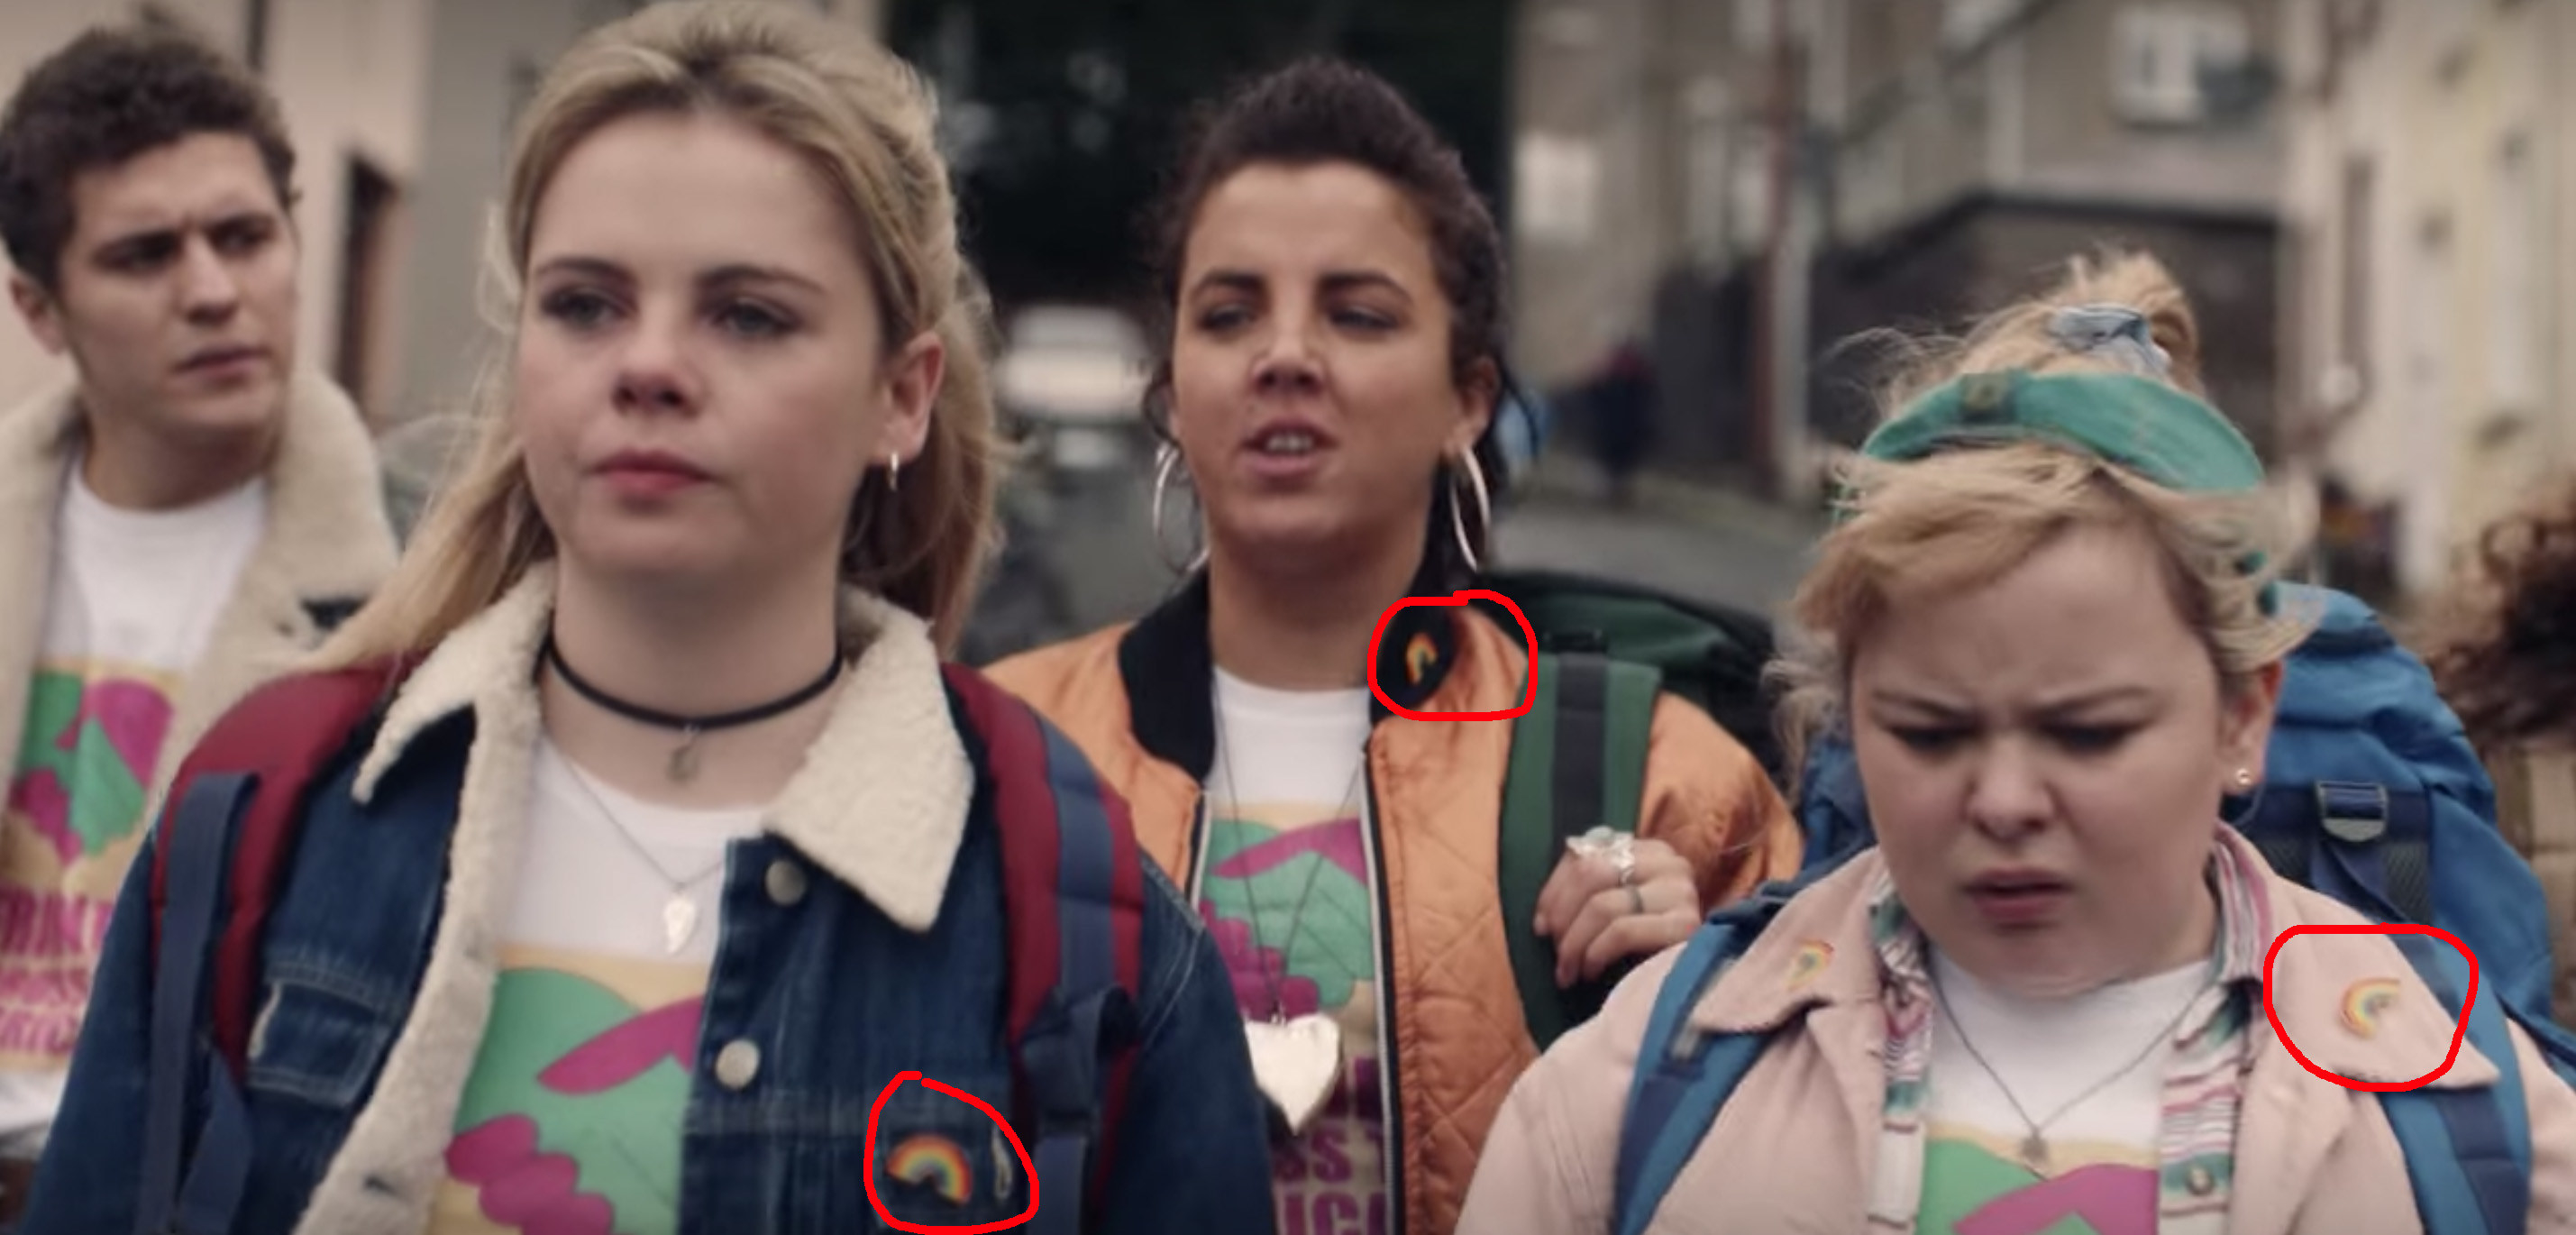 The Derry Girls all wearing rainbow pins